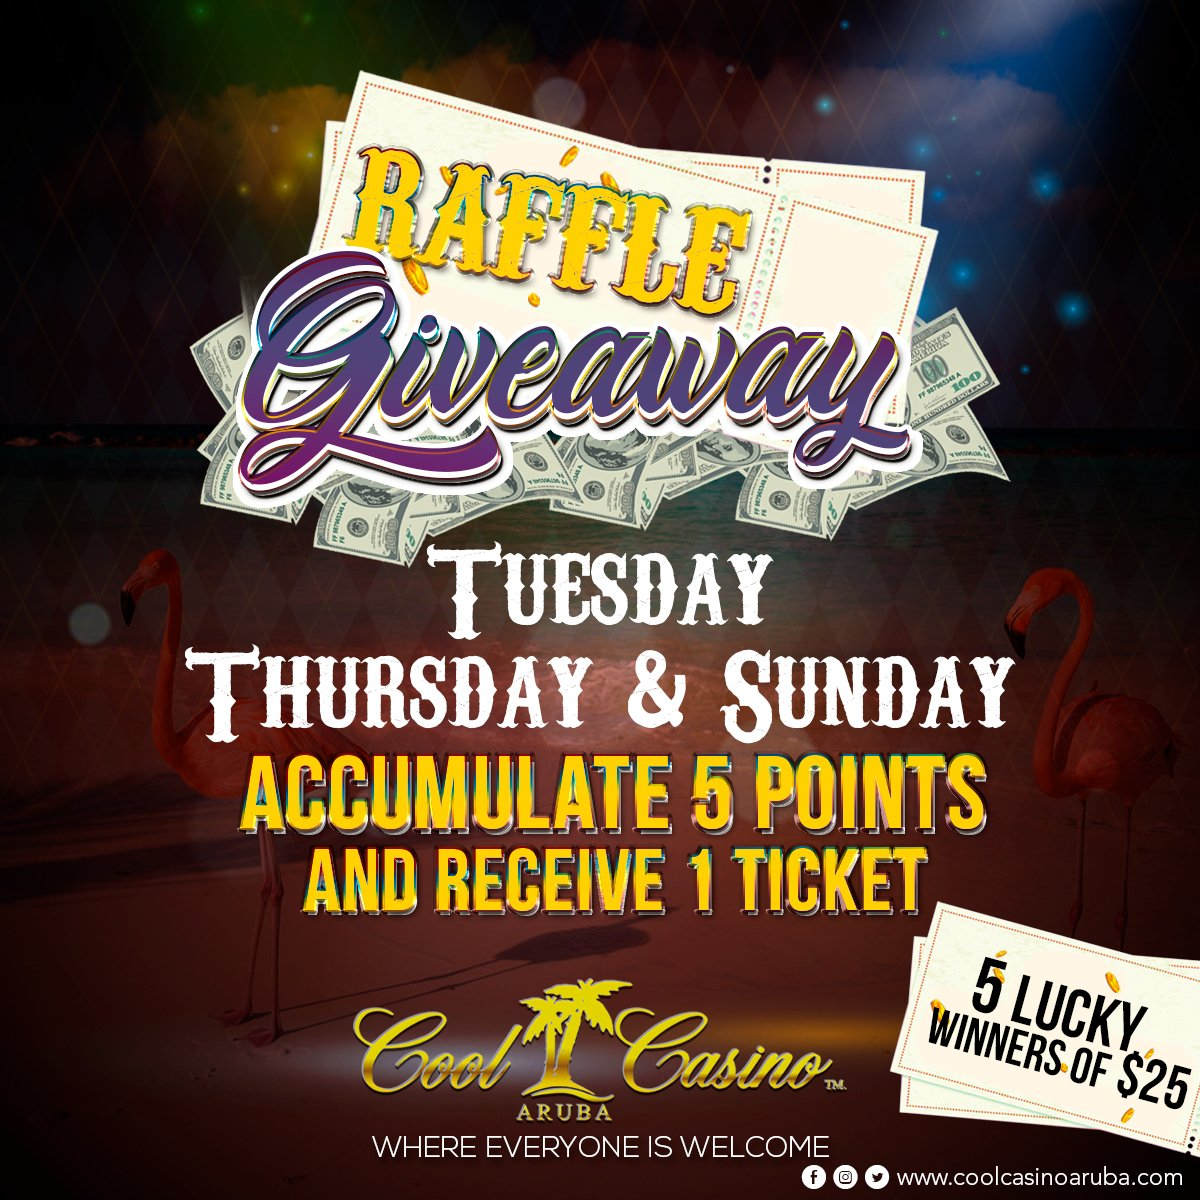 Accumulate 5 points and receive 1 ticker! Every Saturday, here, at your Cool Casino! You could be the 5 lucky winners of $25!  #CoolCasino #Aruba #Riu #Winner #Lucky #Friday #Saturday